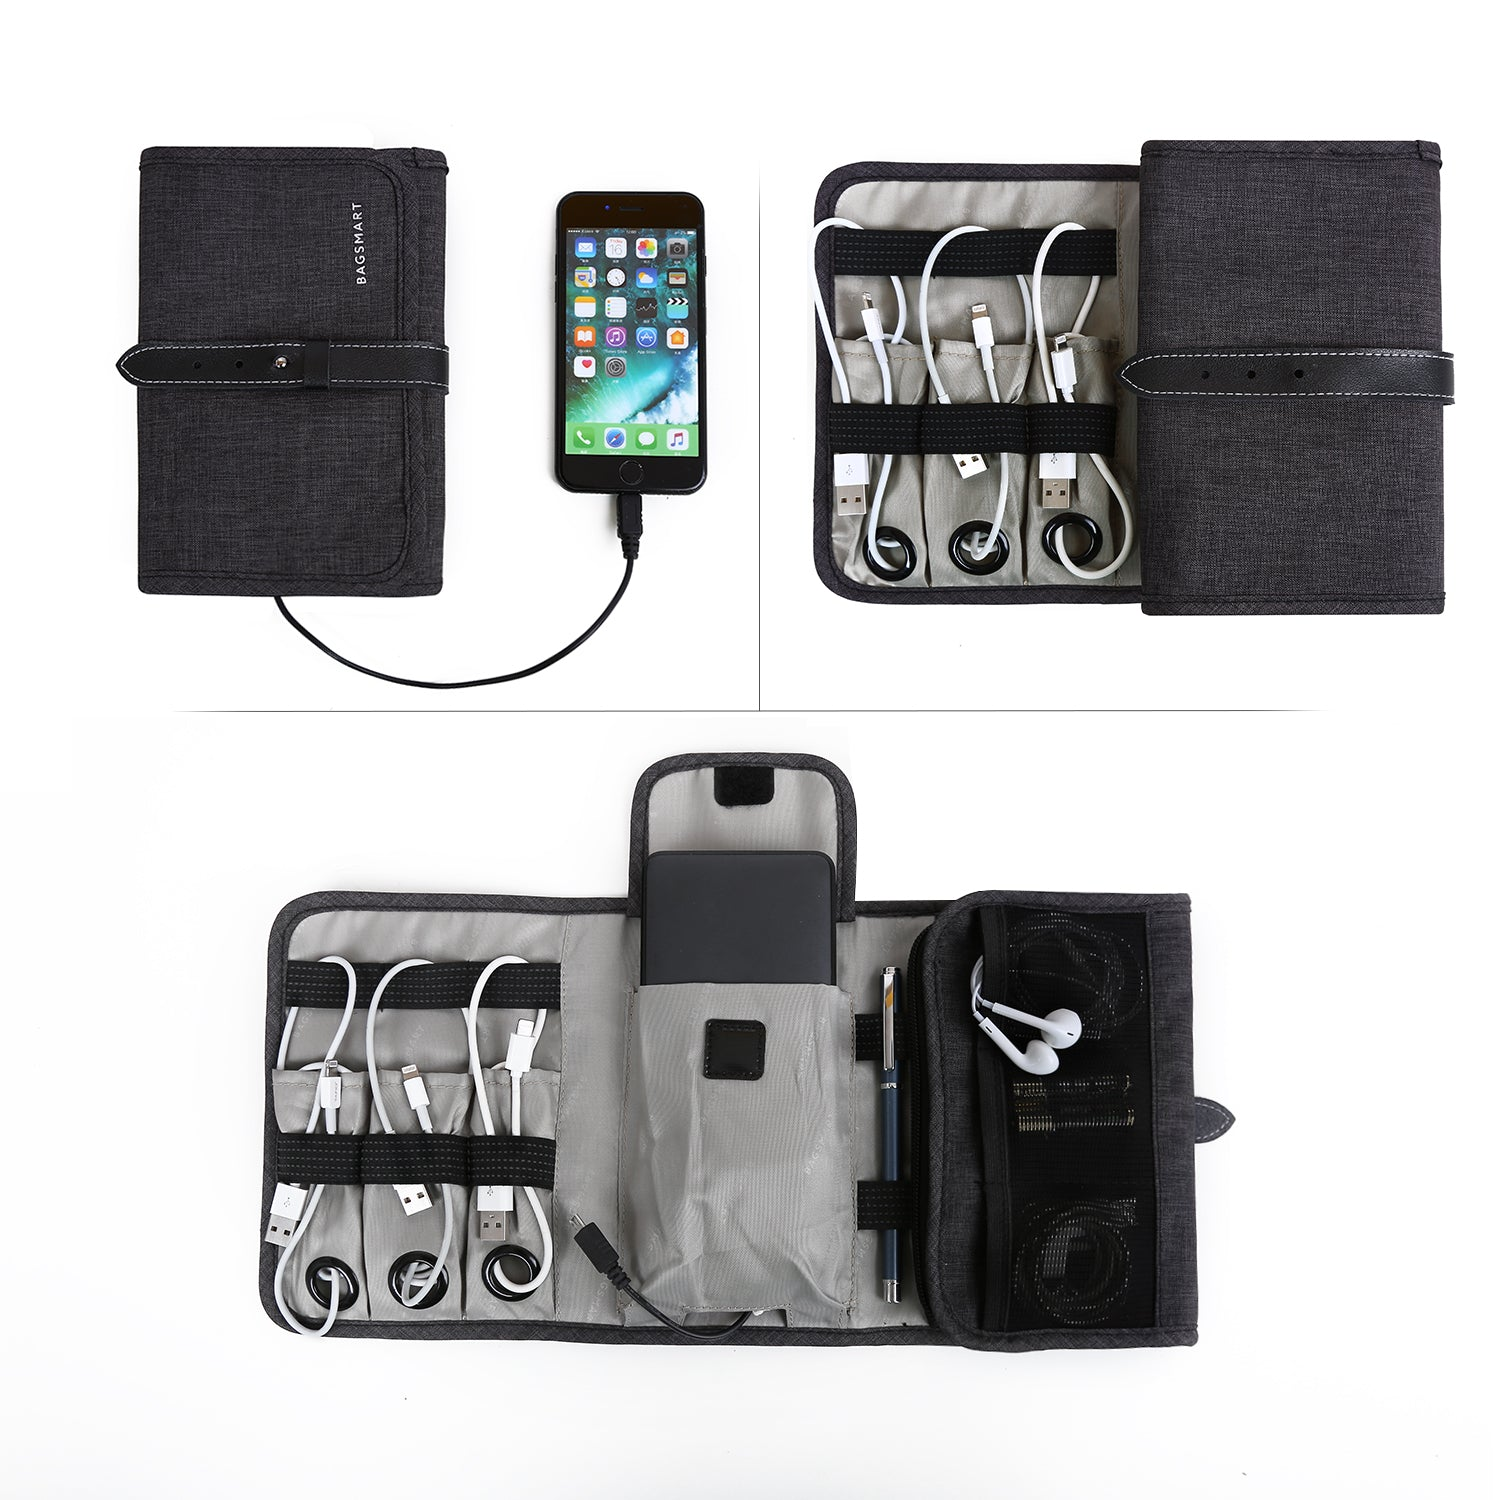 14683085bb BAGSMART Compact Travel Cable Organizer Portable Electronics Accessories Bag  Hard Drive Case for Various USB